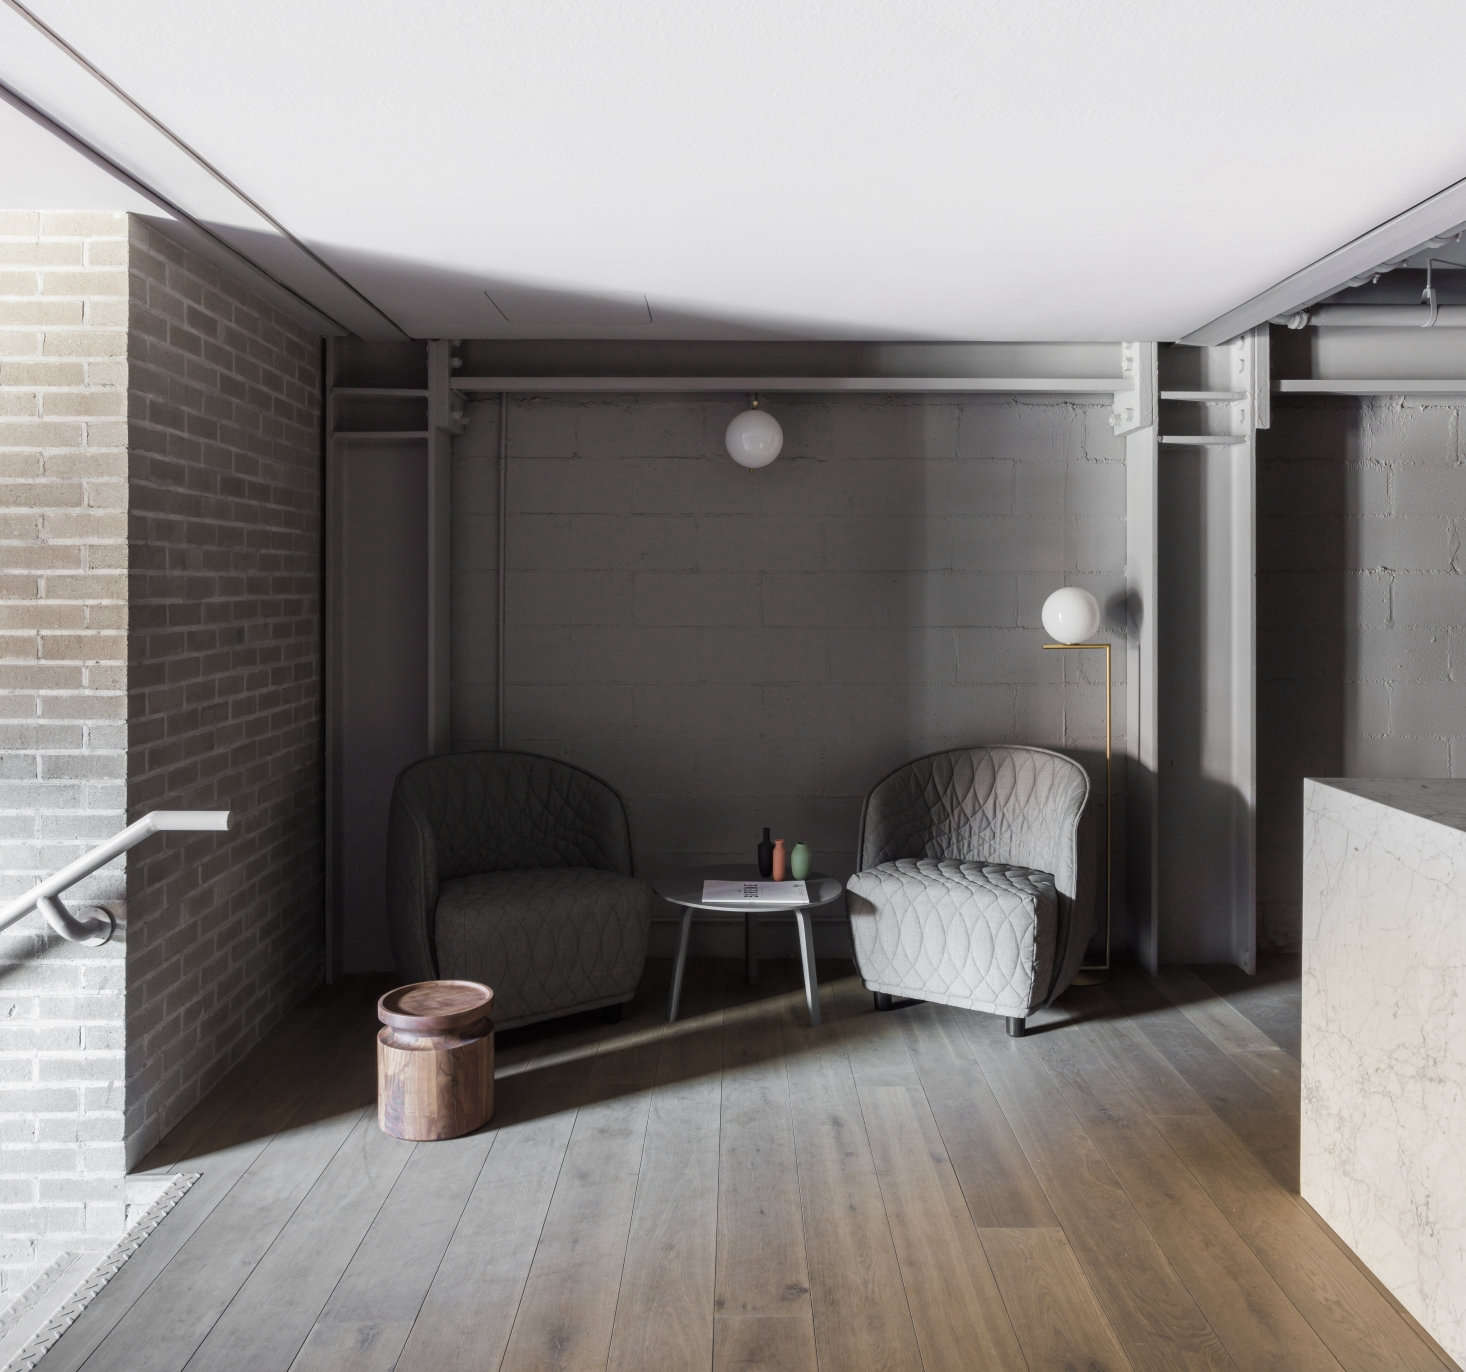 Furnished Apartments Nyc: Explore The Interior Design Of The Sago Hotel NYC